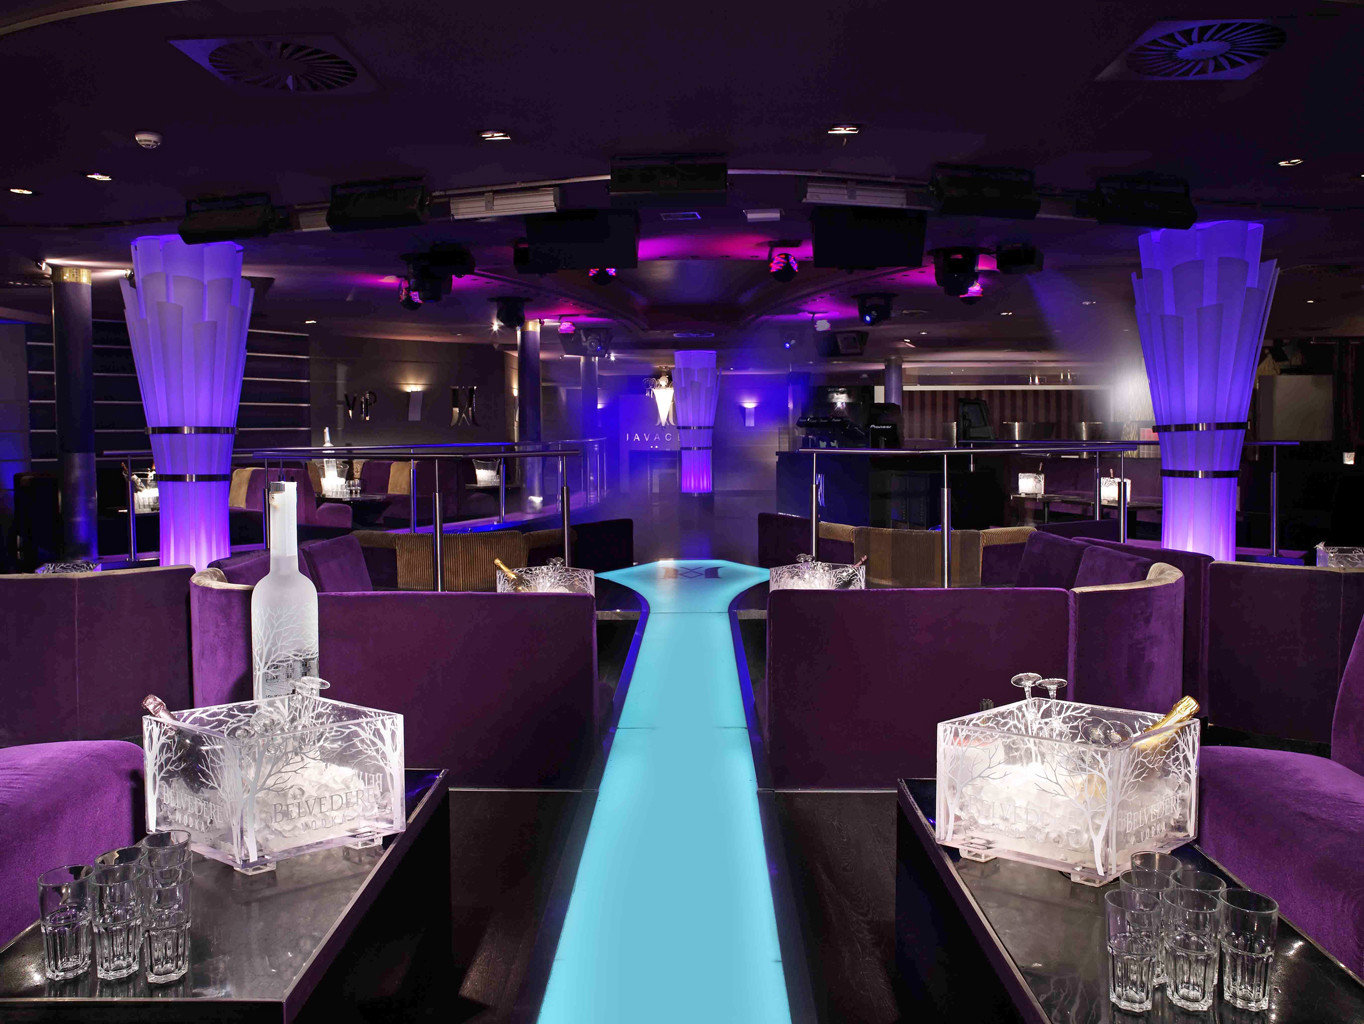 Bar Drink Eat Hip Lounge Travel Trends Trip Ideas indoor ceiling purple function hall meal nightclub banquet wedding reception ballroom colored several